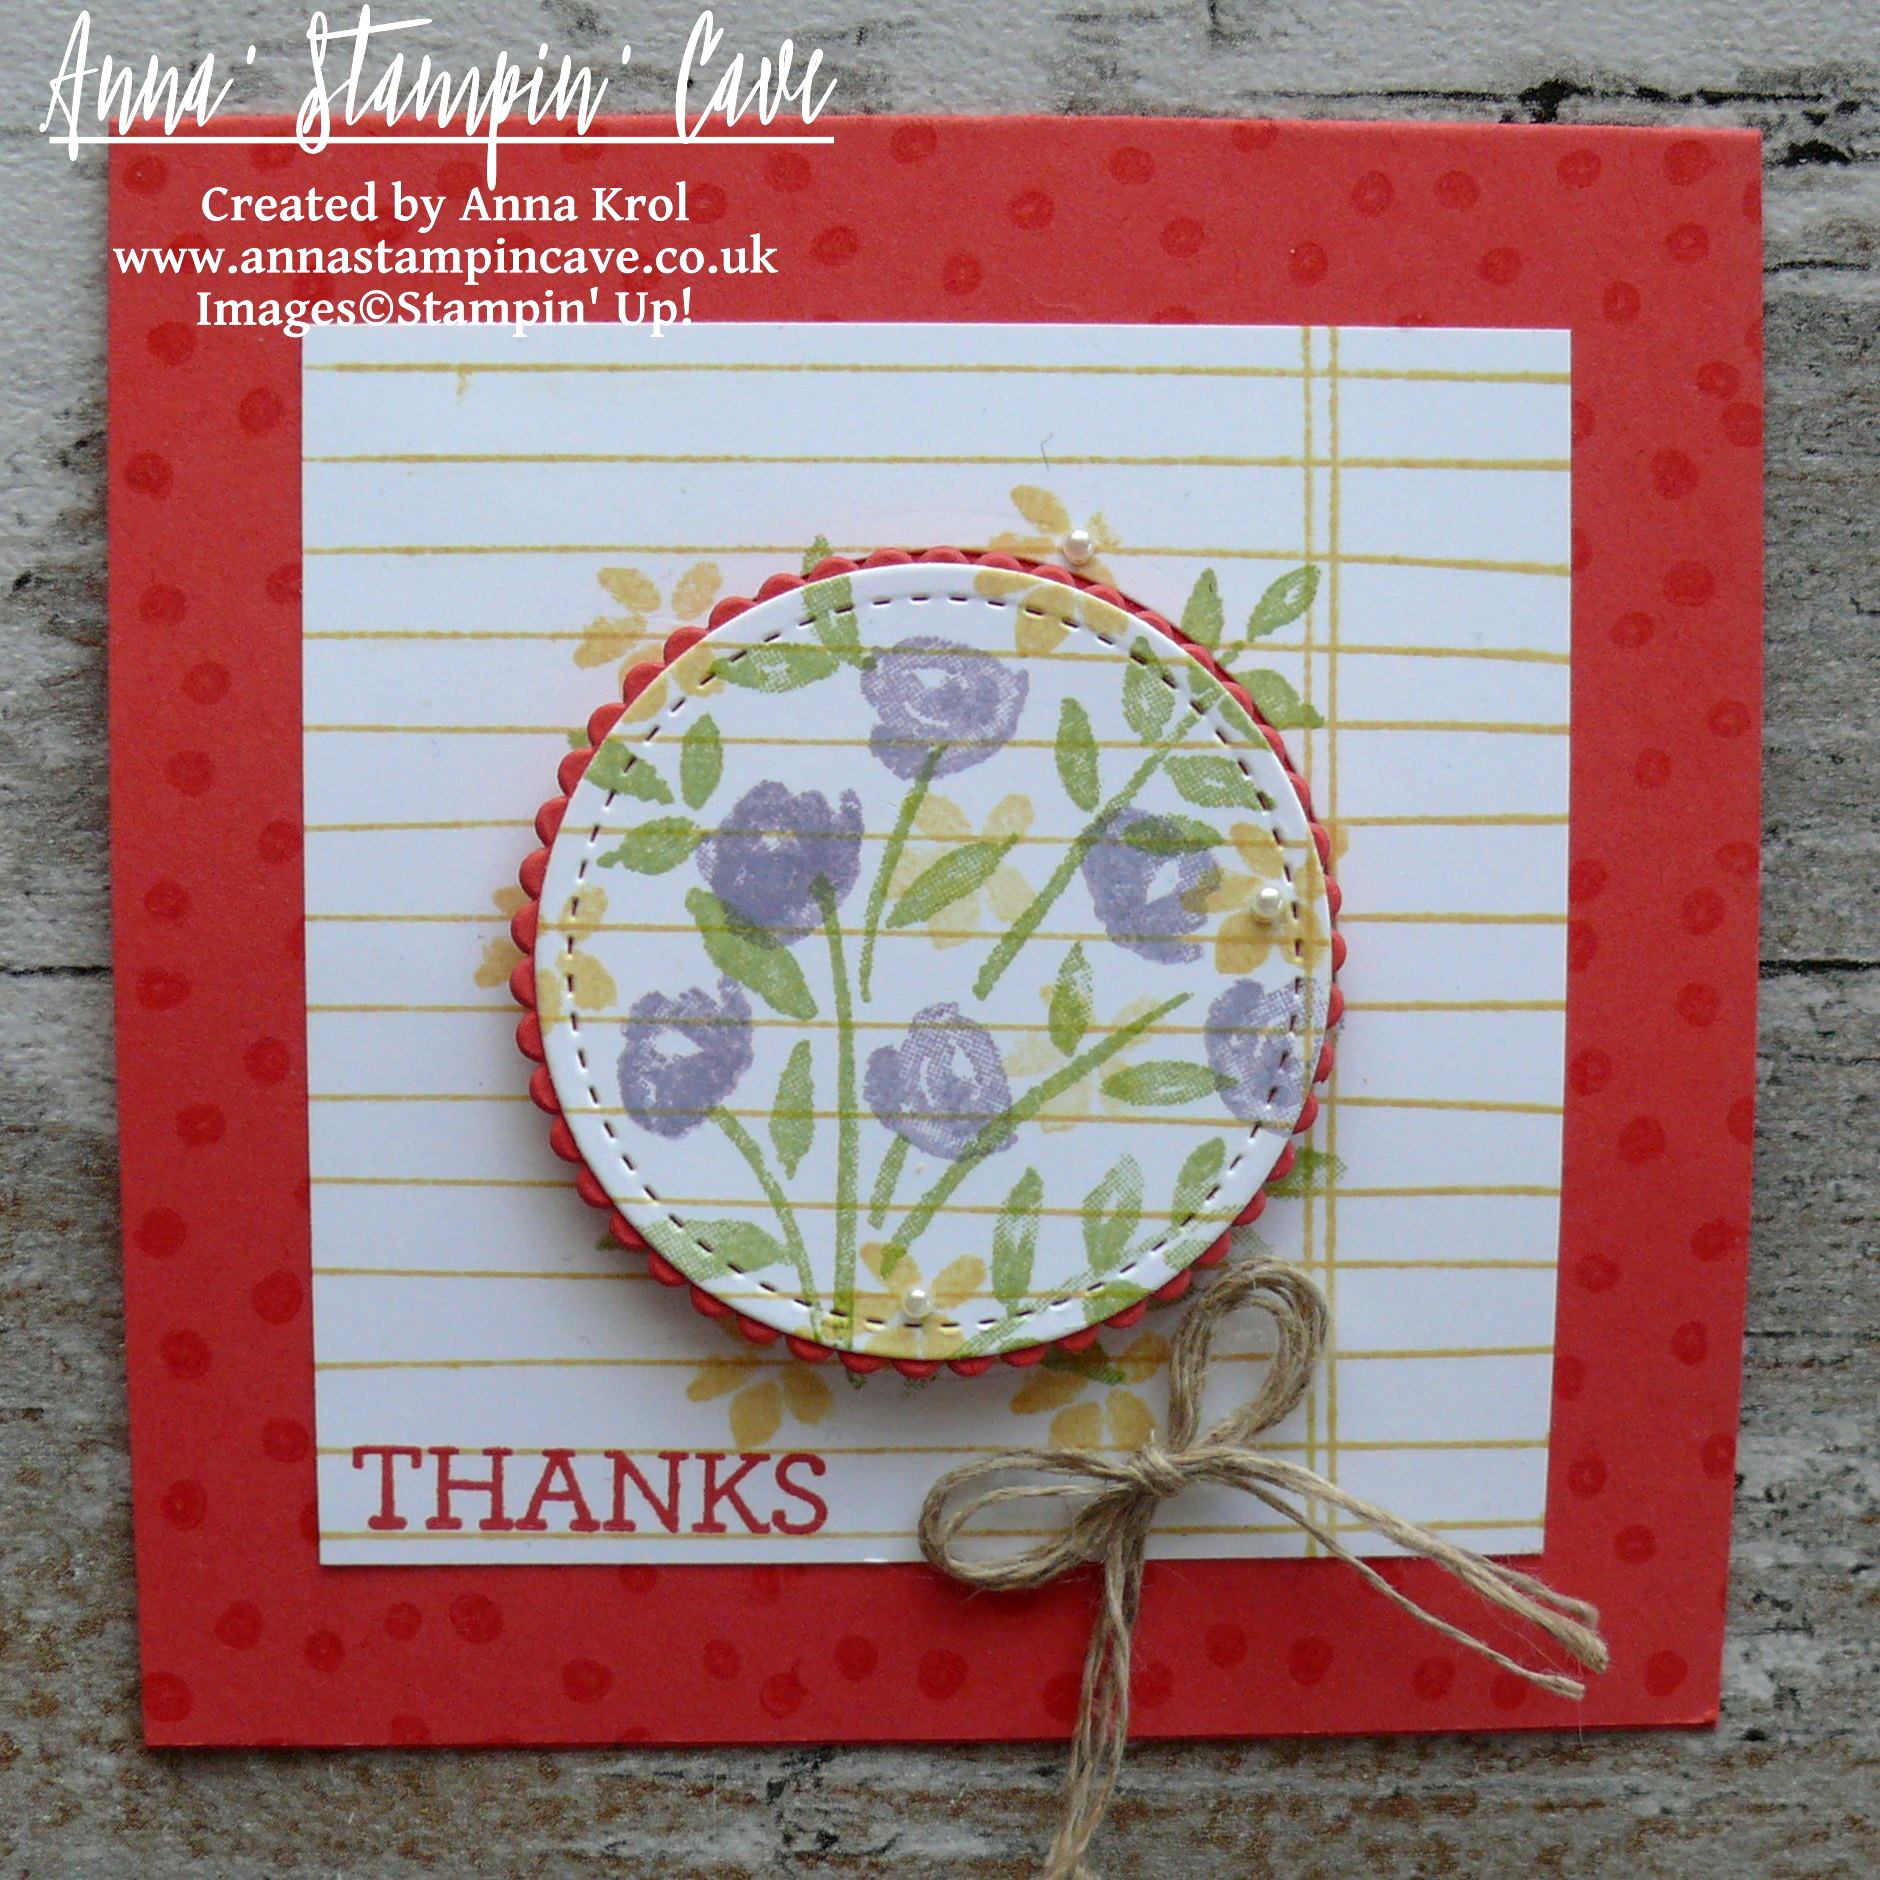 Anna' Stampin' Cave - Stampin' Up! Number Of Years Stamp Set - Hello Spring Watermelon Wonder Notecard